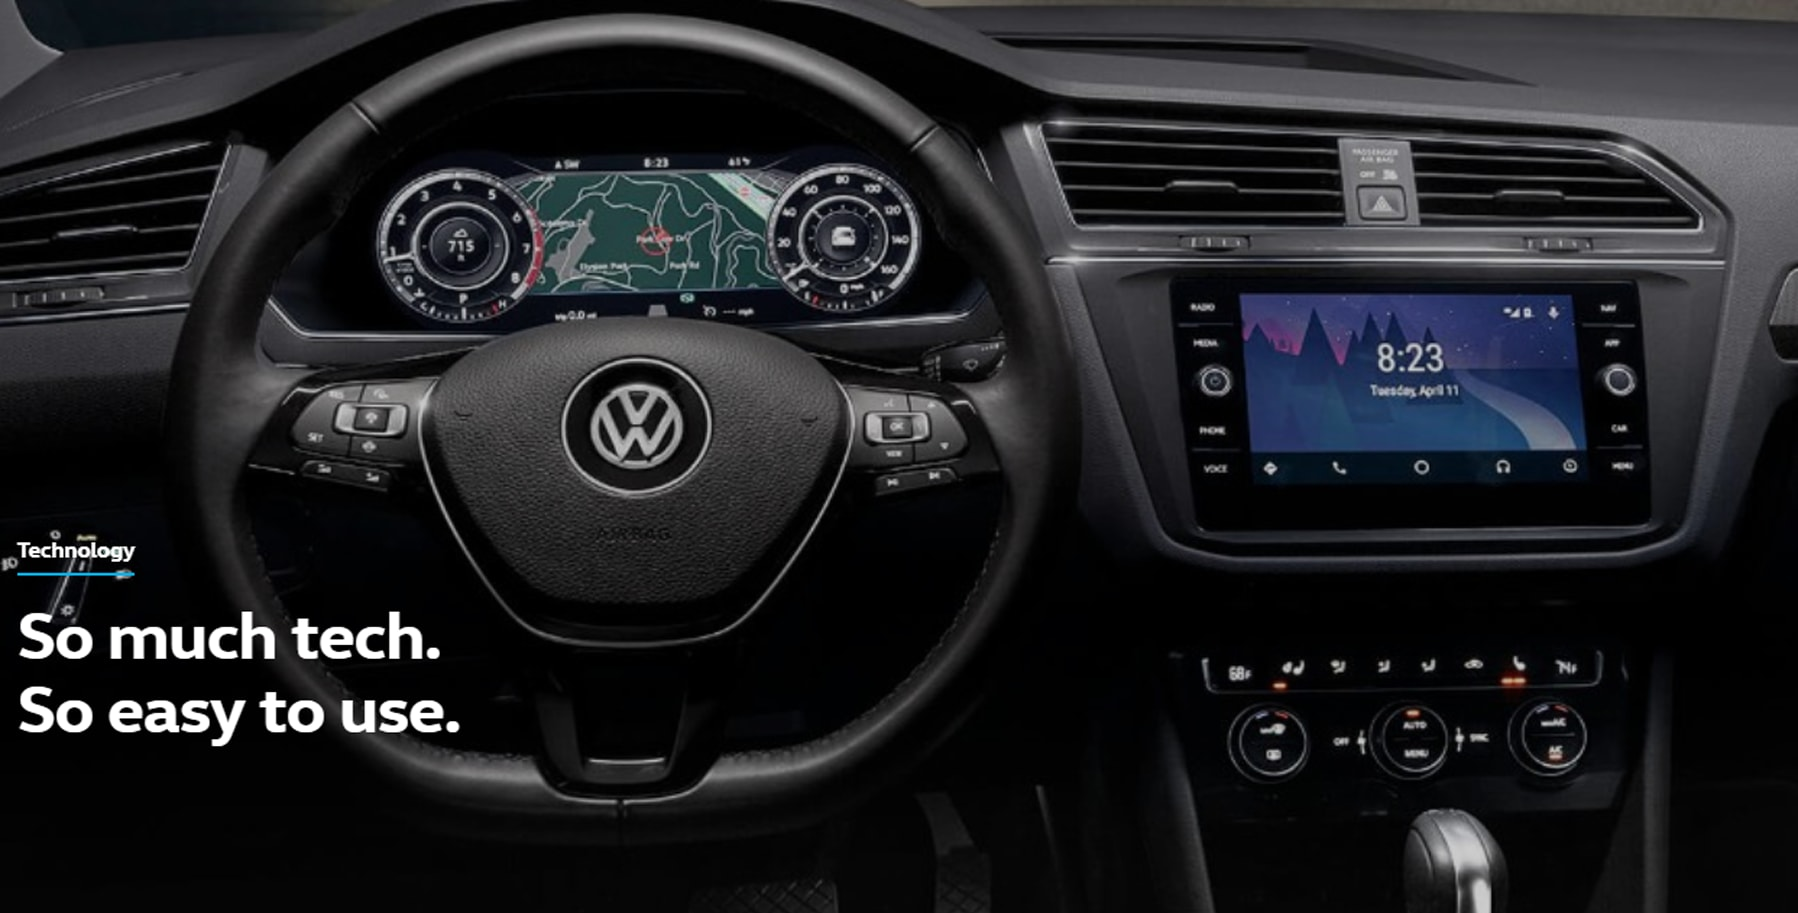 2019 Volkswagen Tiguan dashboard technology